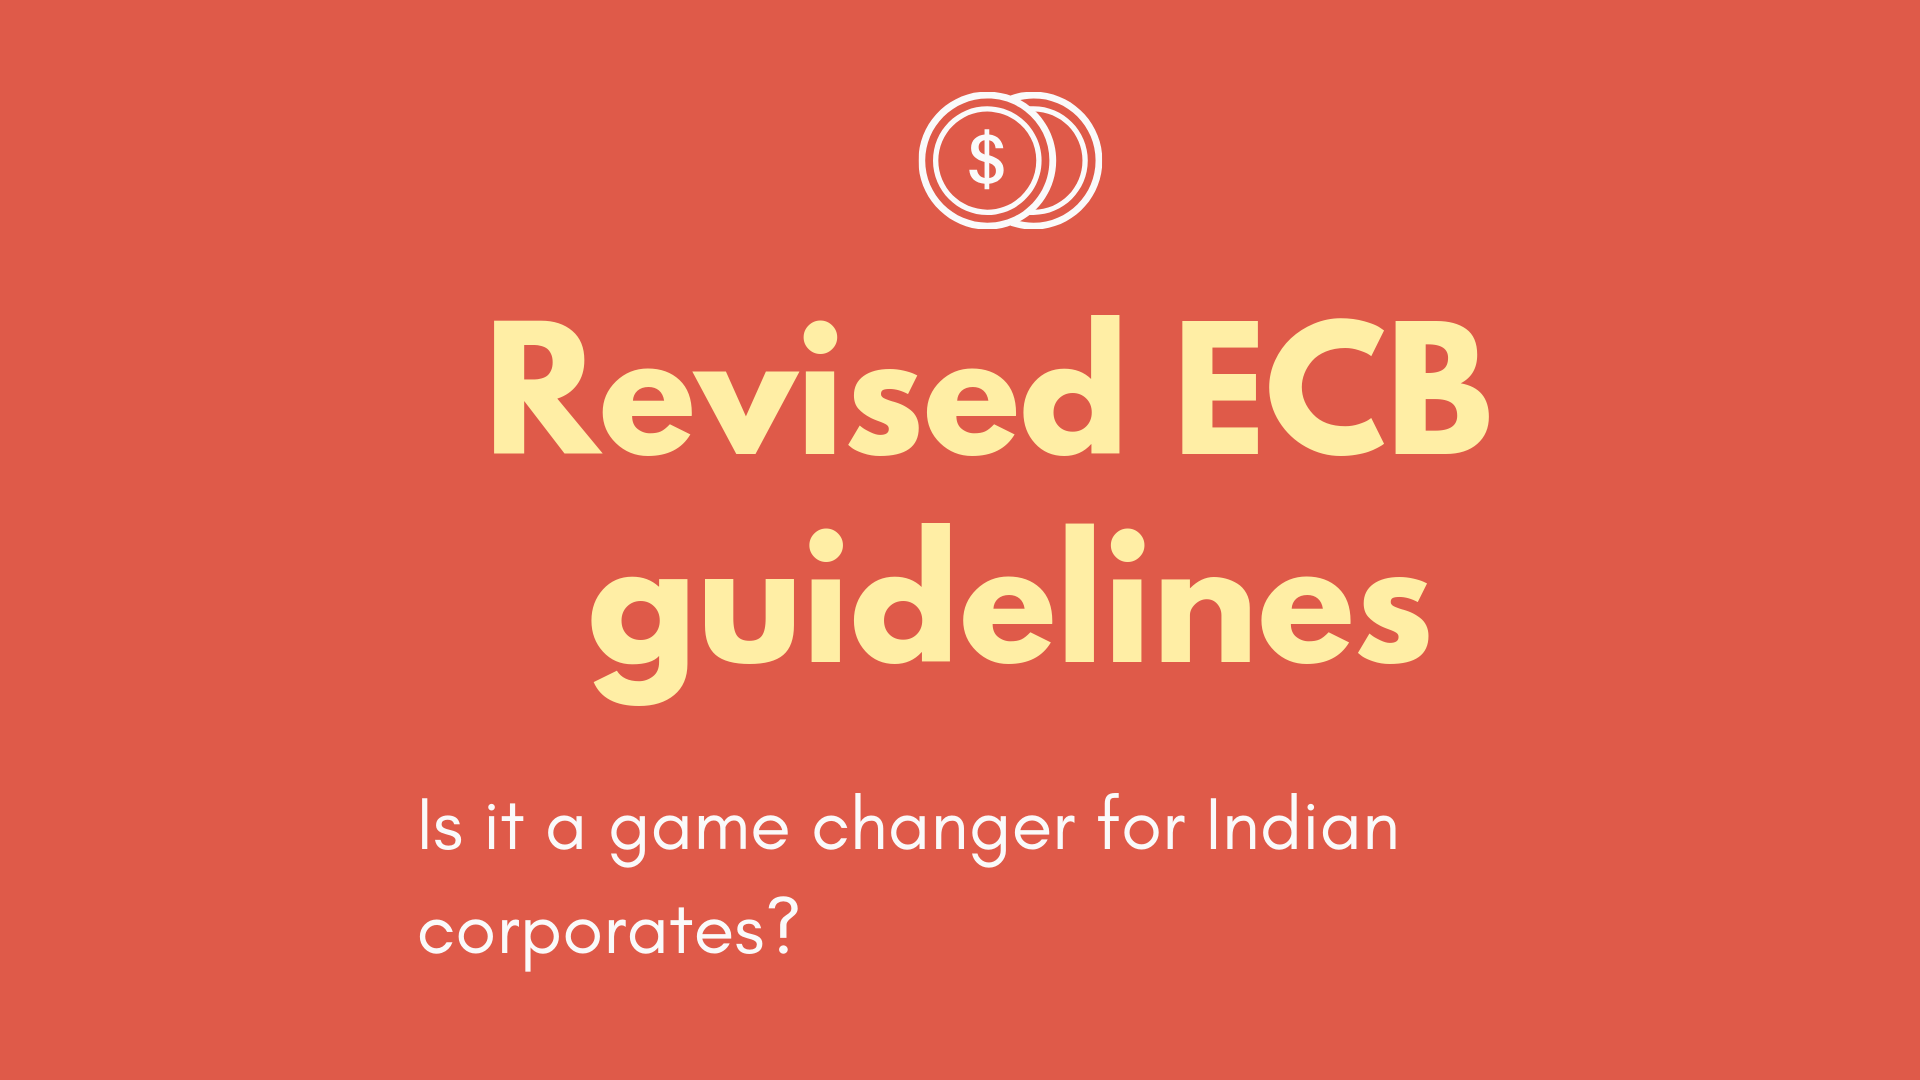 Revised ECB guidelines..Is it a game changer for Indian corporates?